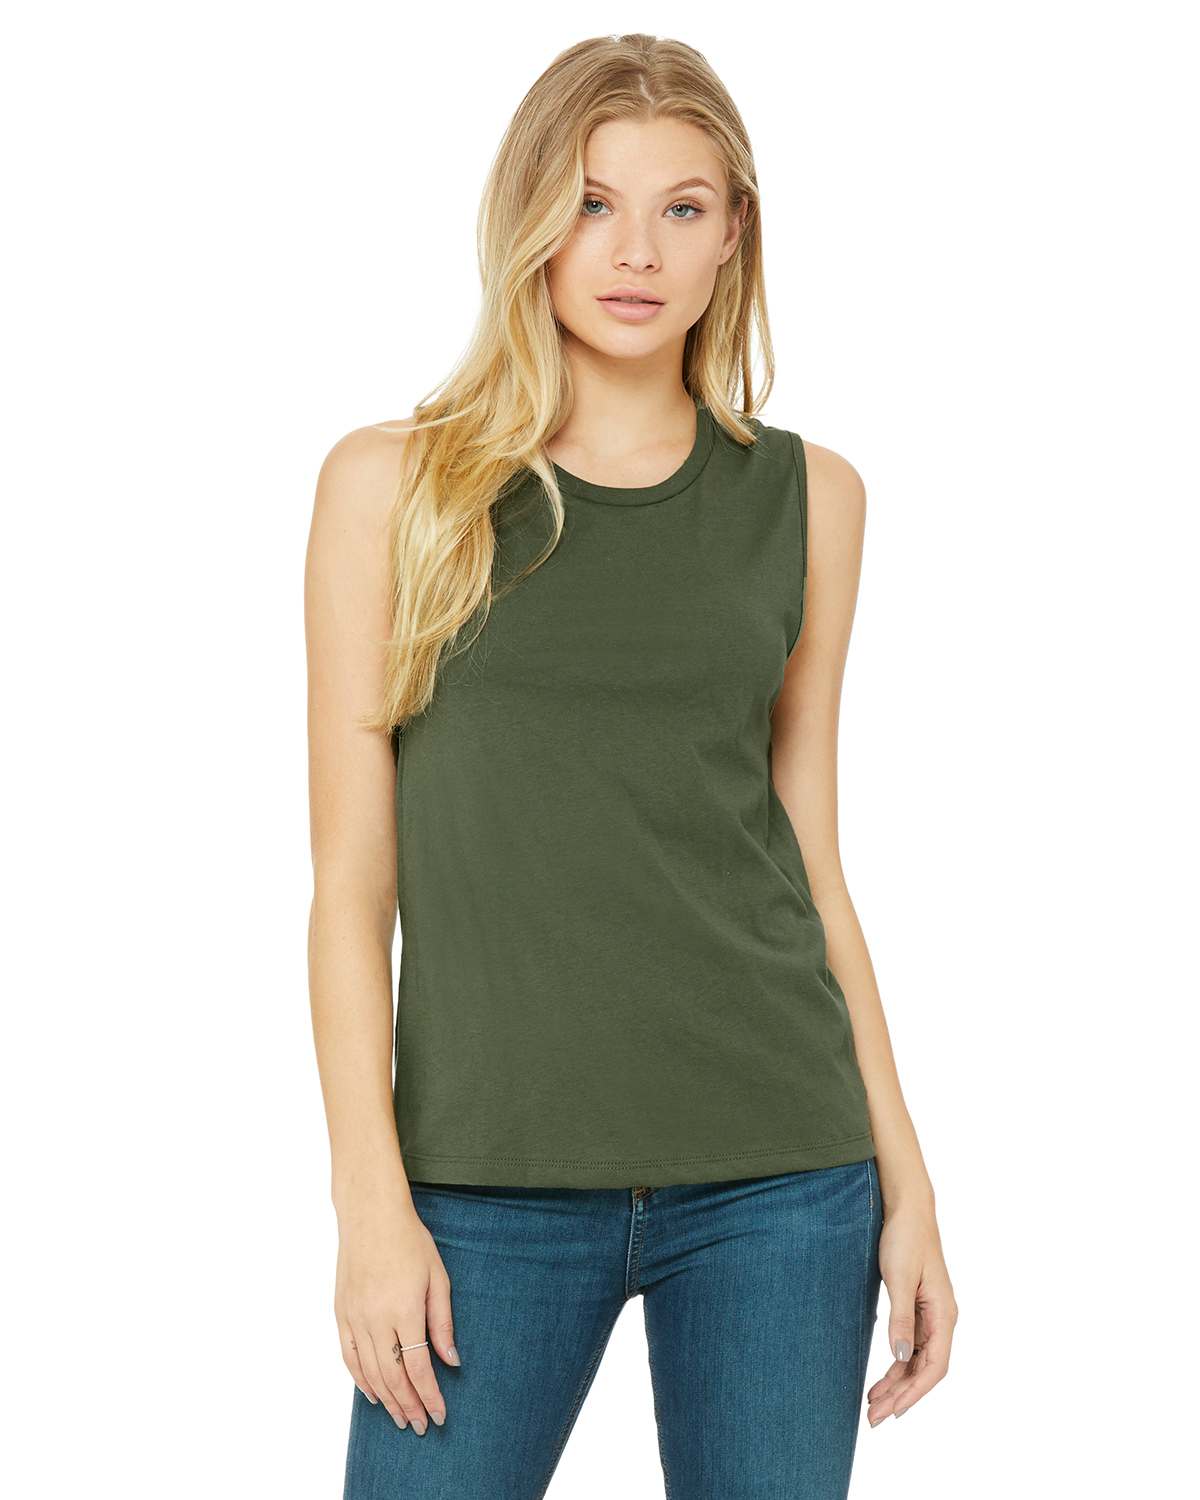 Bella+Canvas 6003 - Women's Jersey Muscle Tank